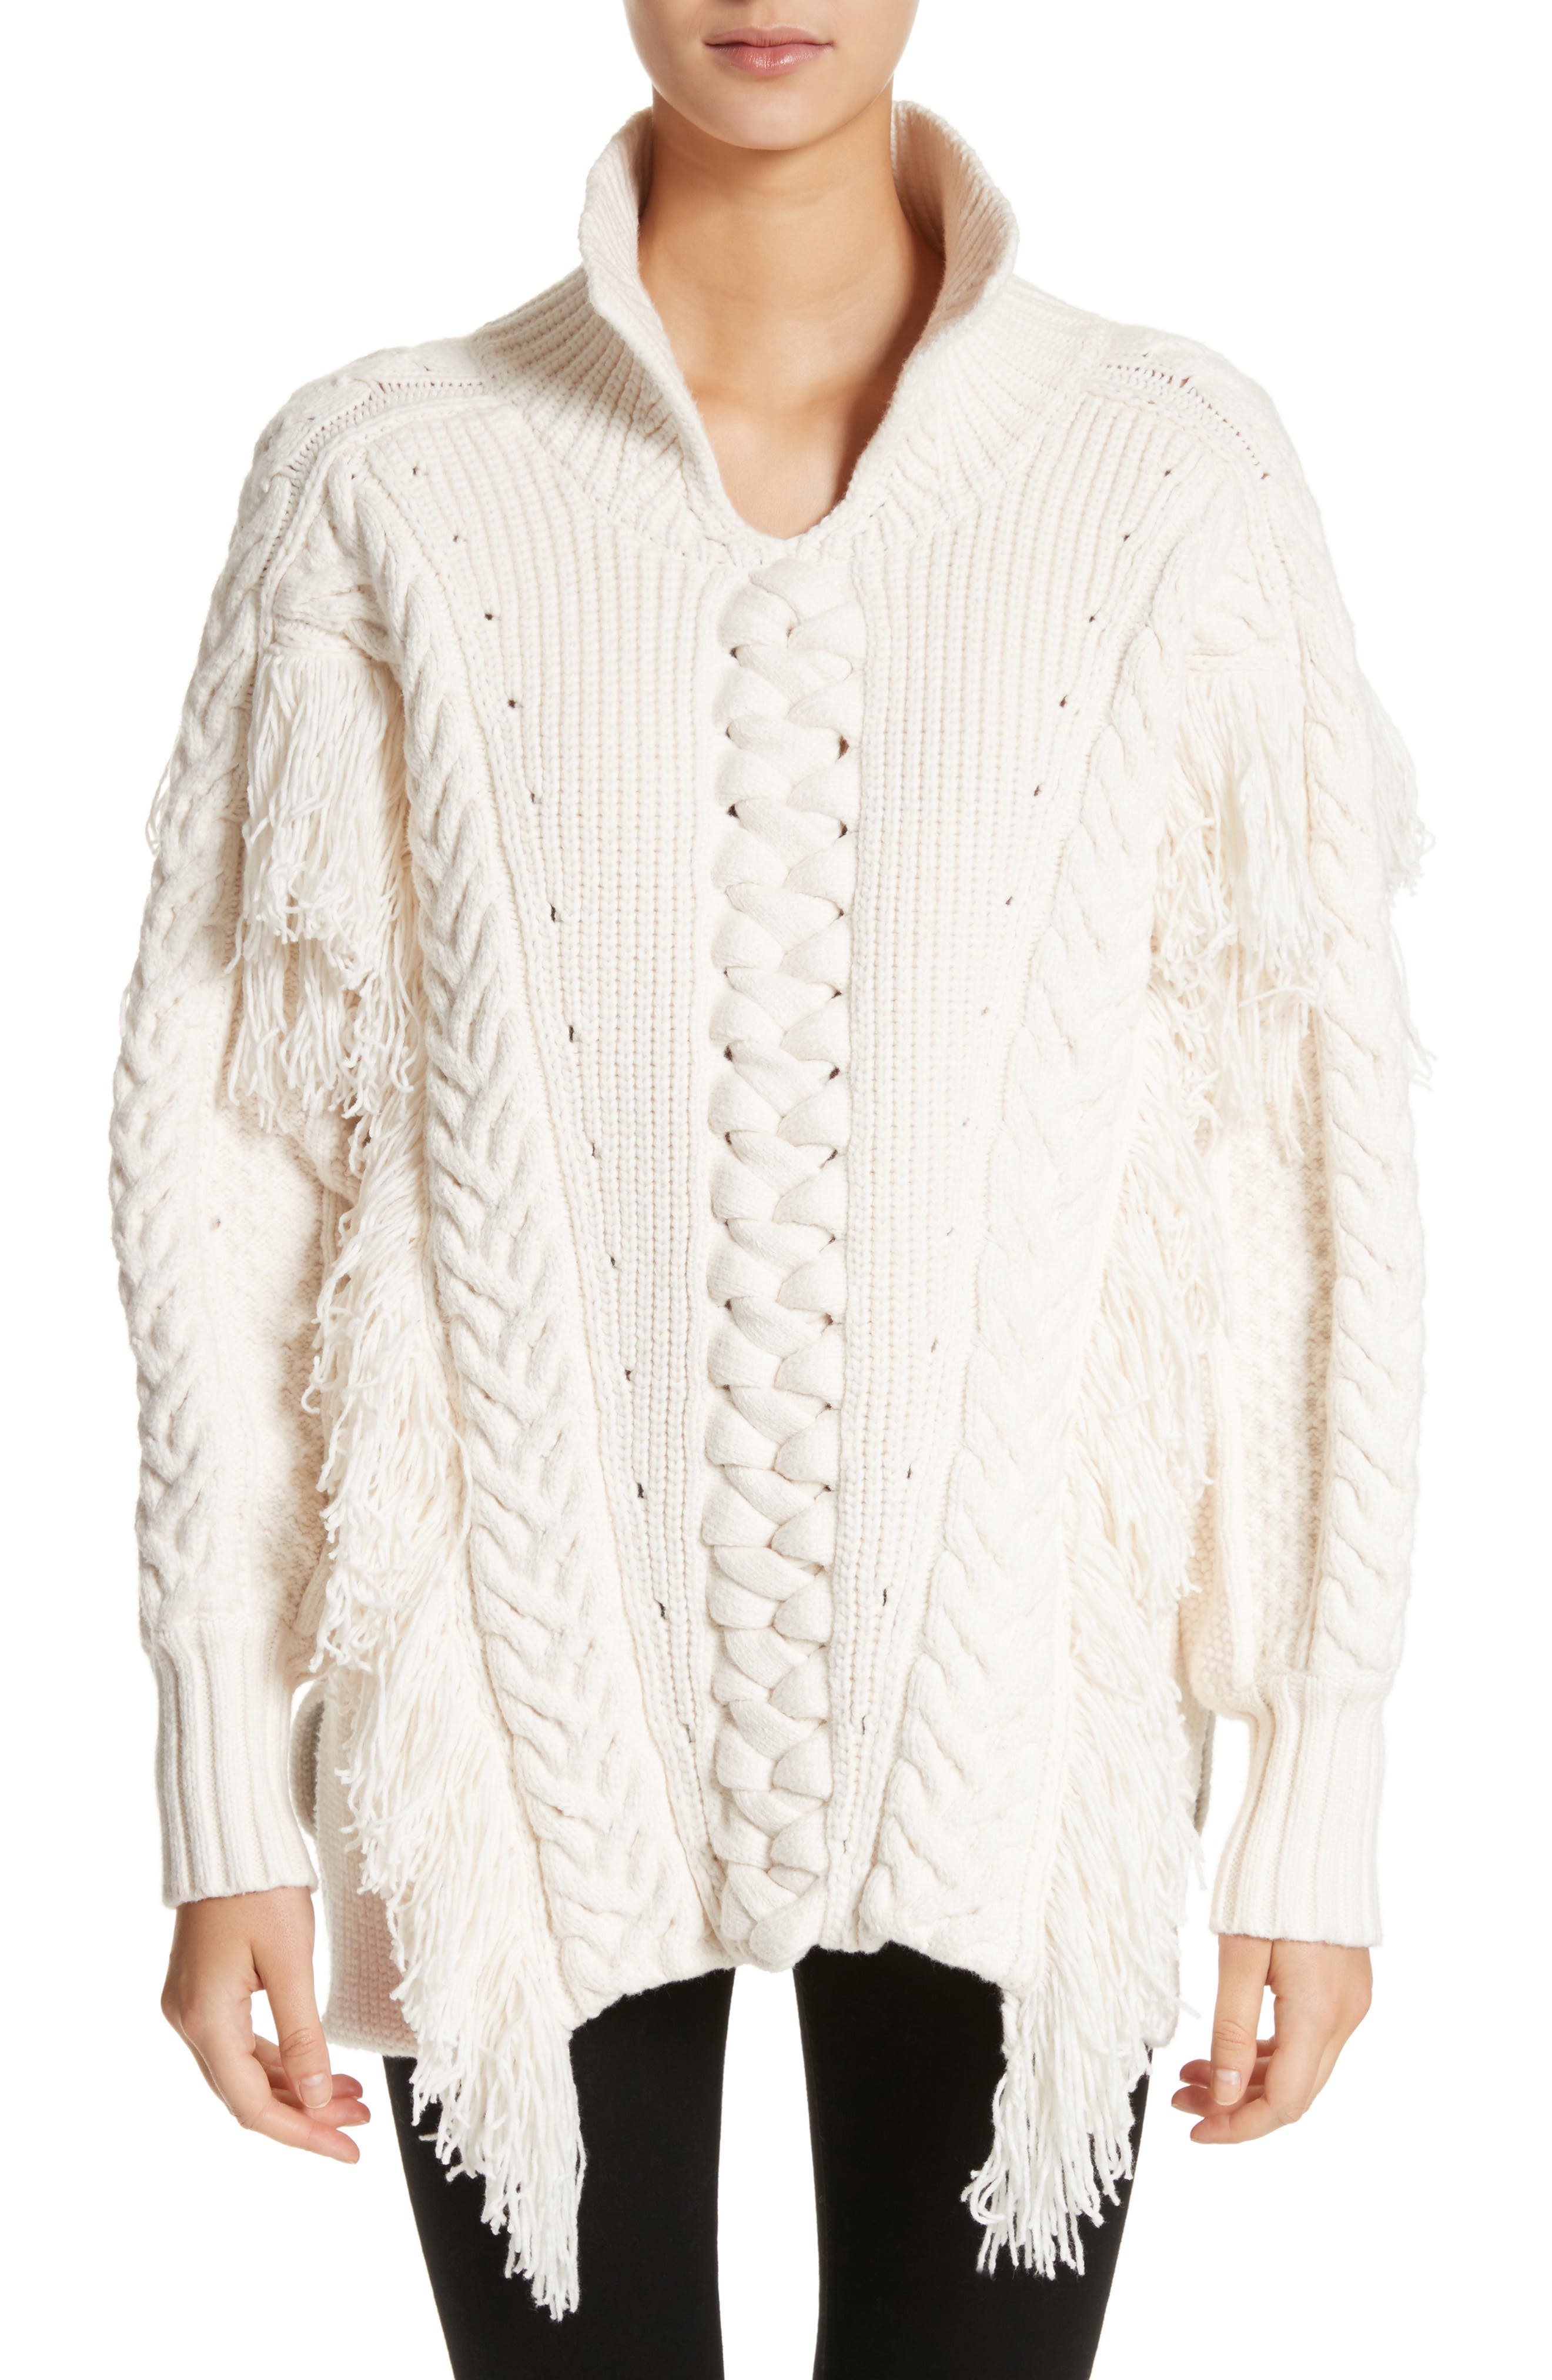 Borbore Fringed Cable Knit Sweater,                         Main,                         color, Natural White